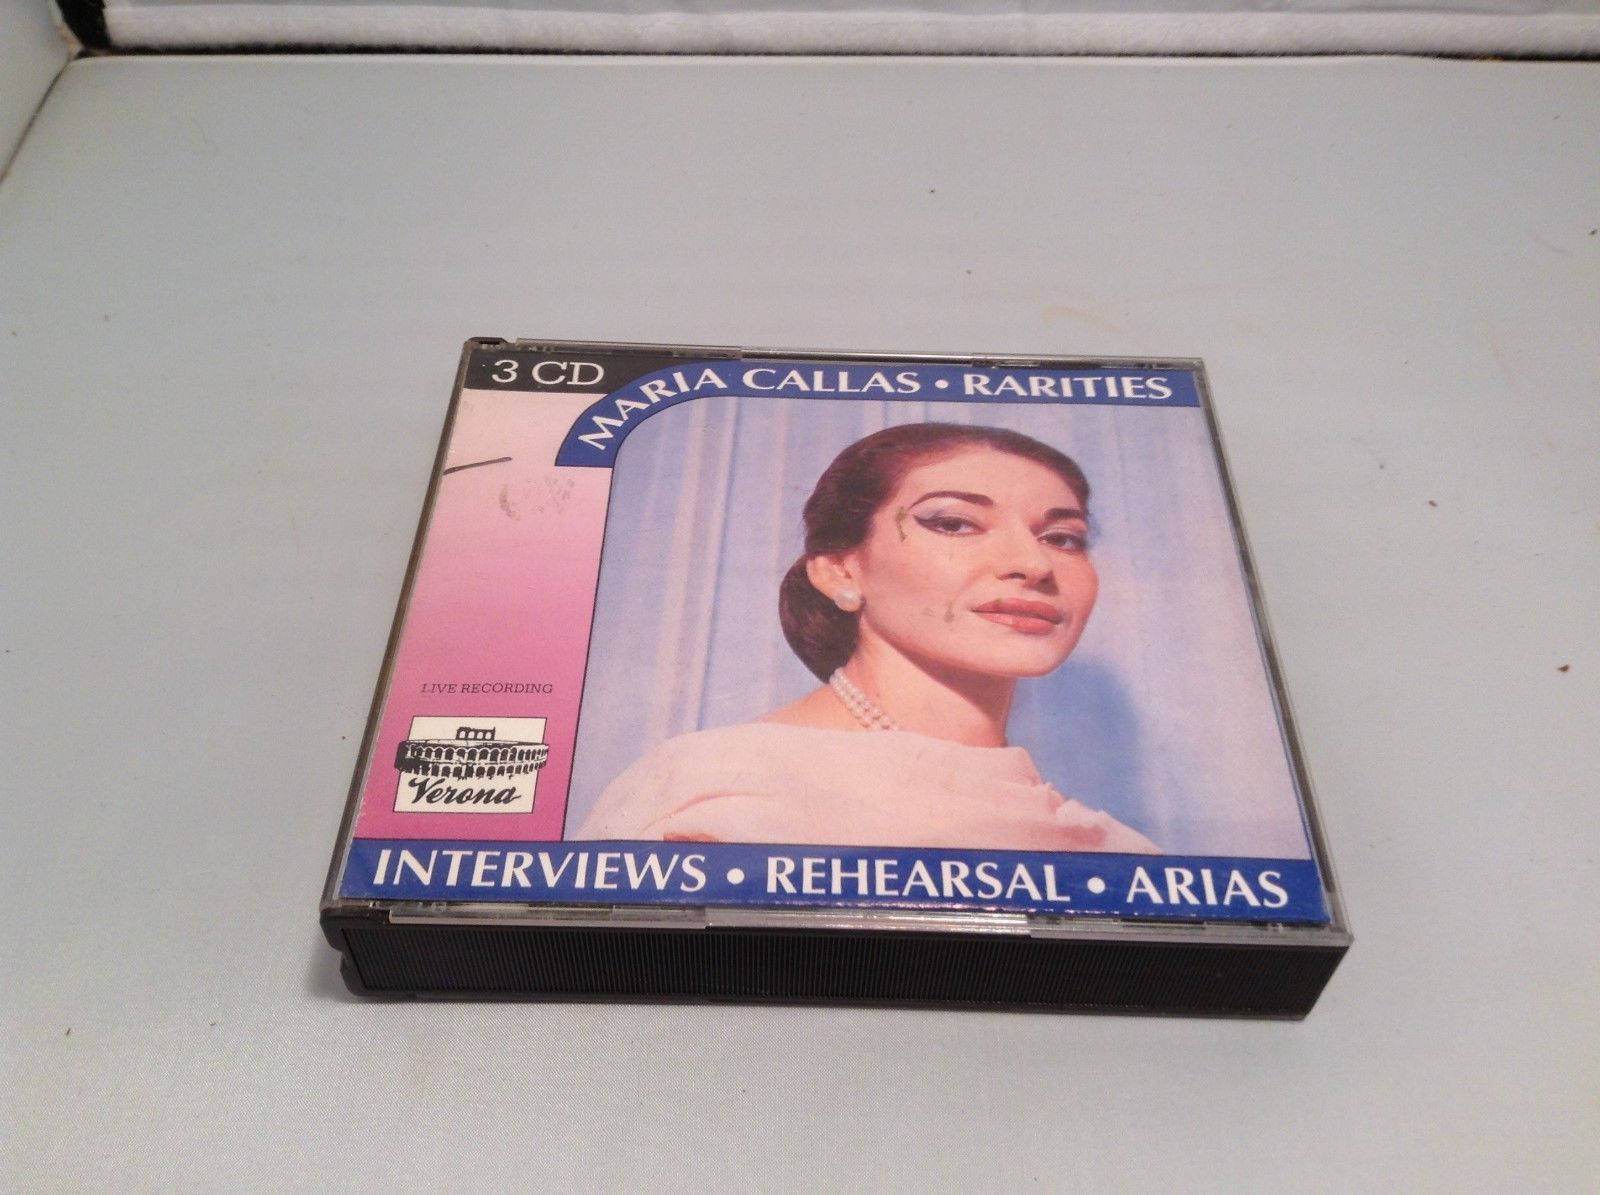 Maria Callas Rarities Interviews Rehearsals Arias Live Recording 3CD Set